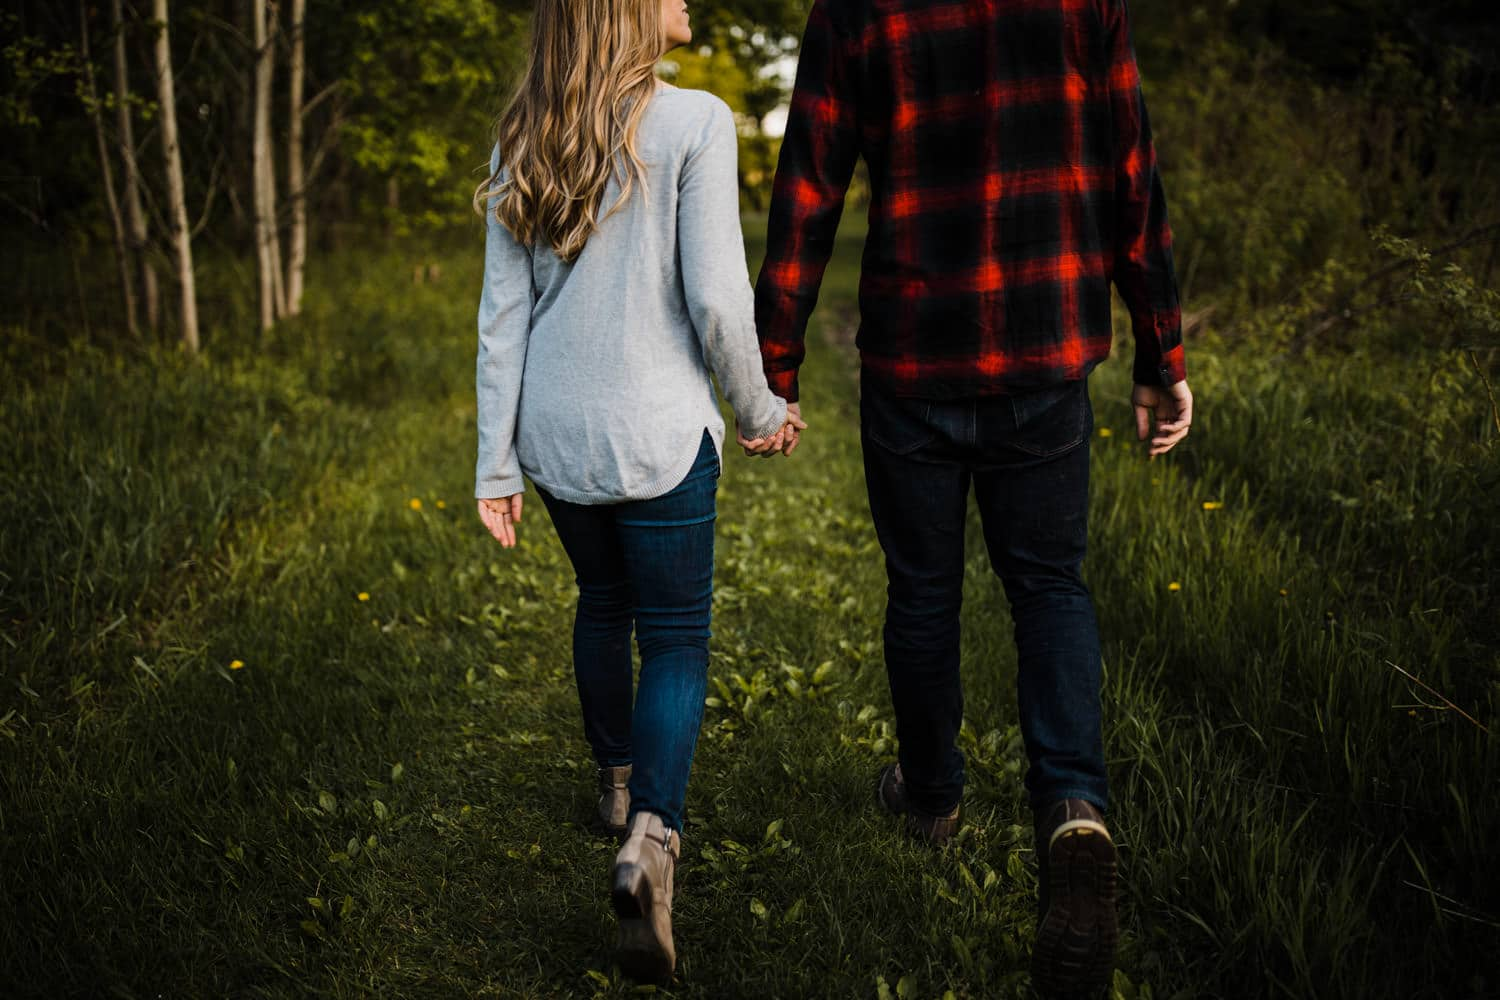 Couple walk hand in hand outdoors together